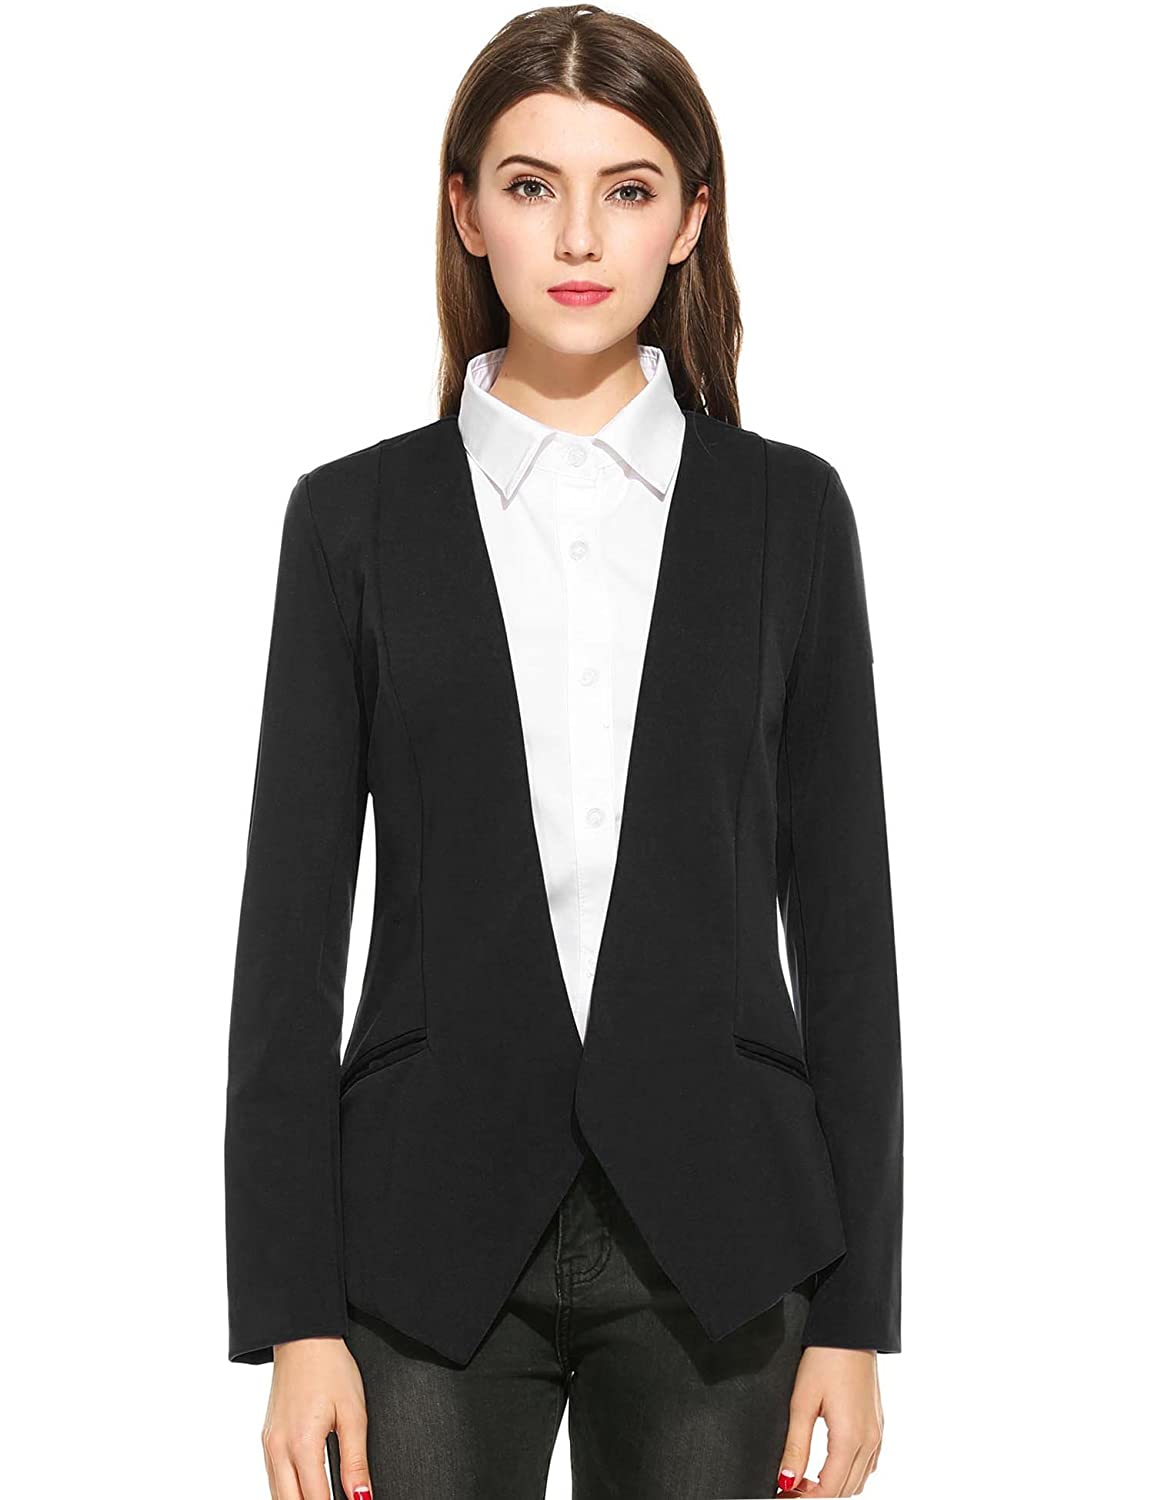 ANGVNS Women Casual Slim Turn Down Collar Curved Swing Blazers Jacket for Work